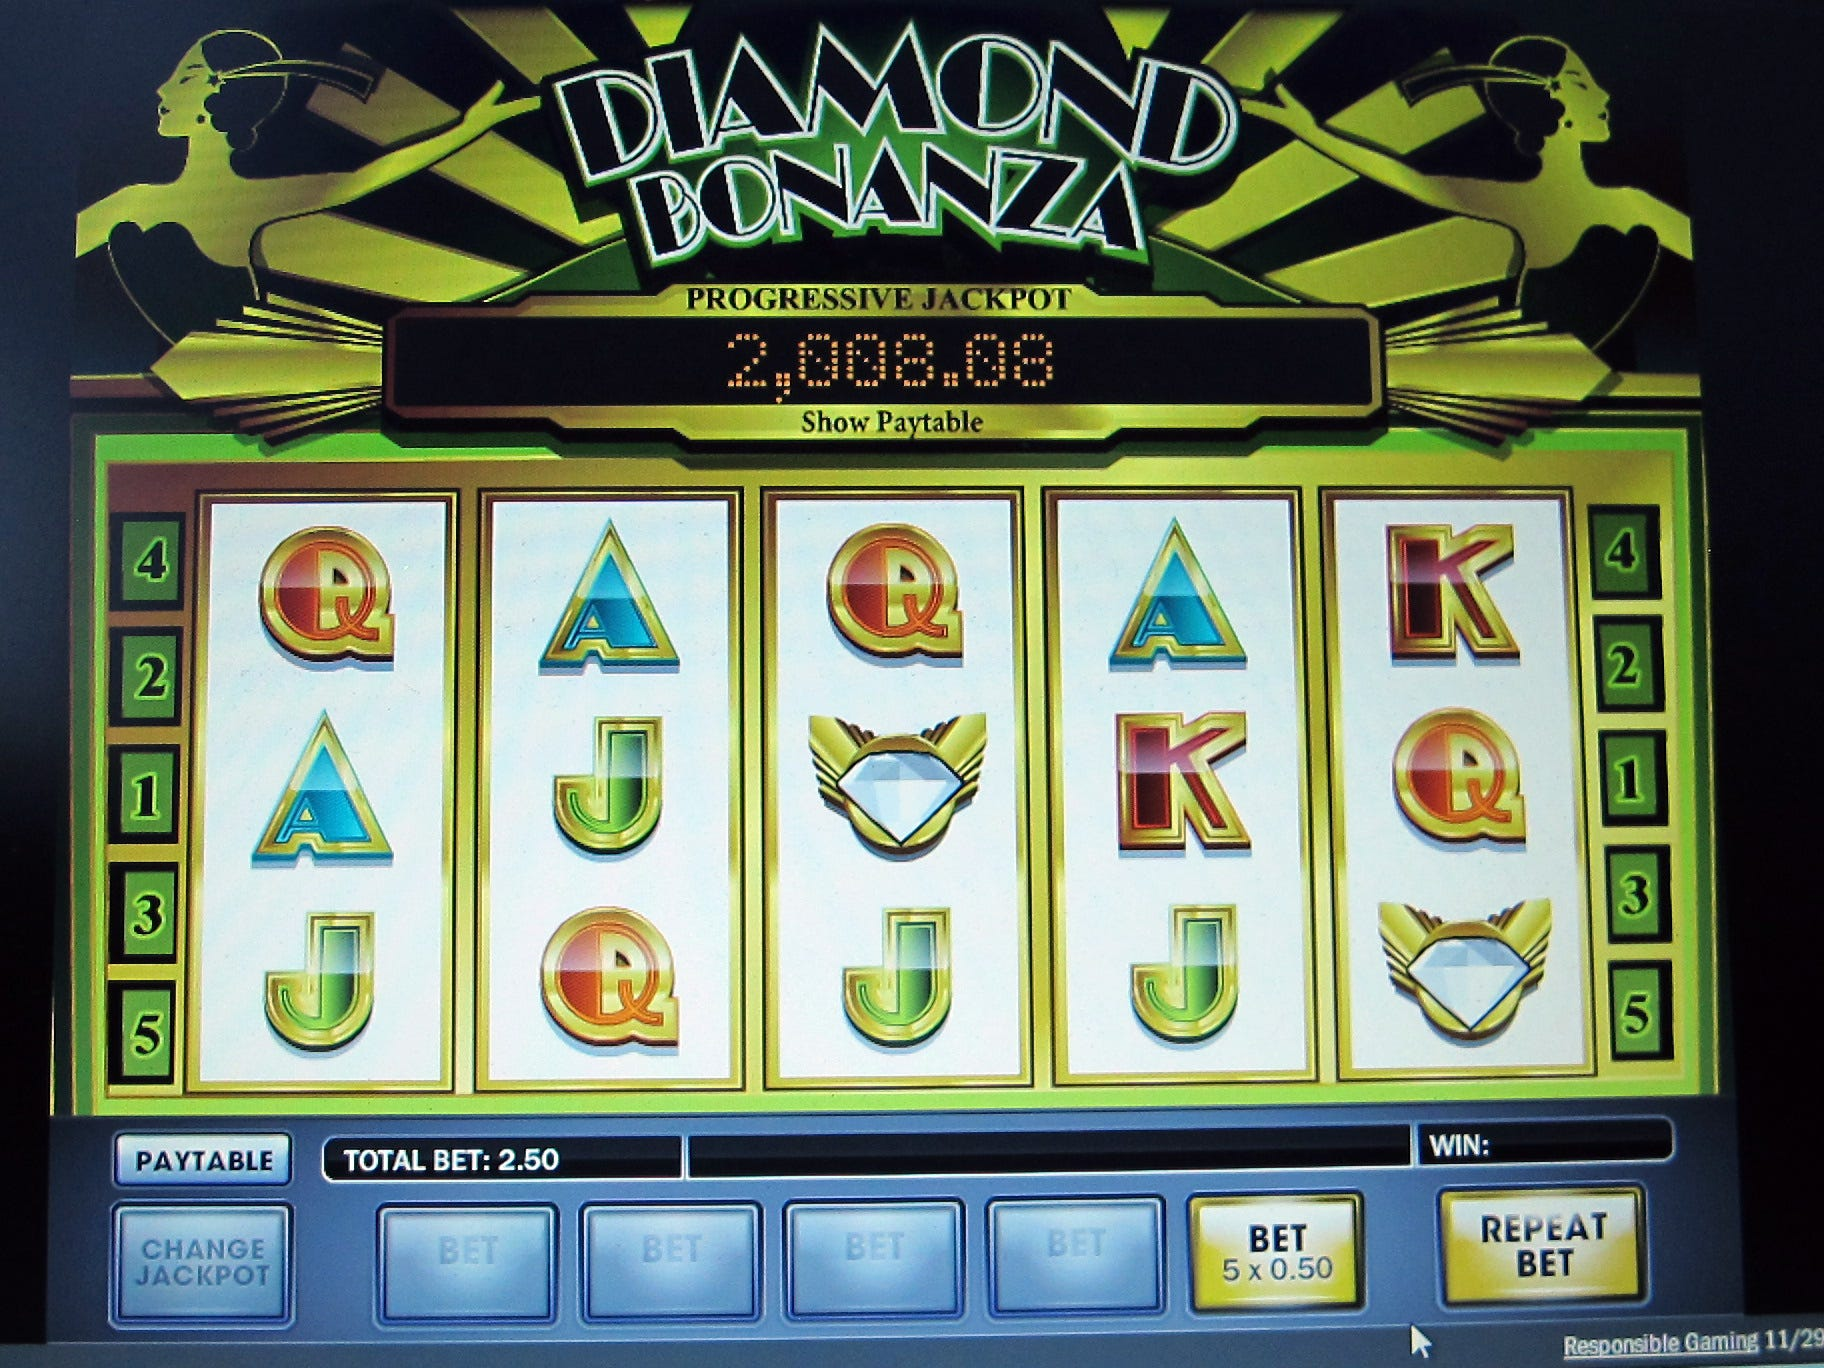 Online gambling as a game changer to money laundering play free blackjack switch